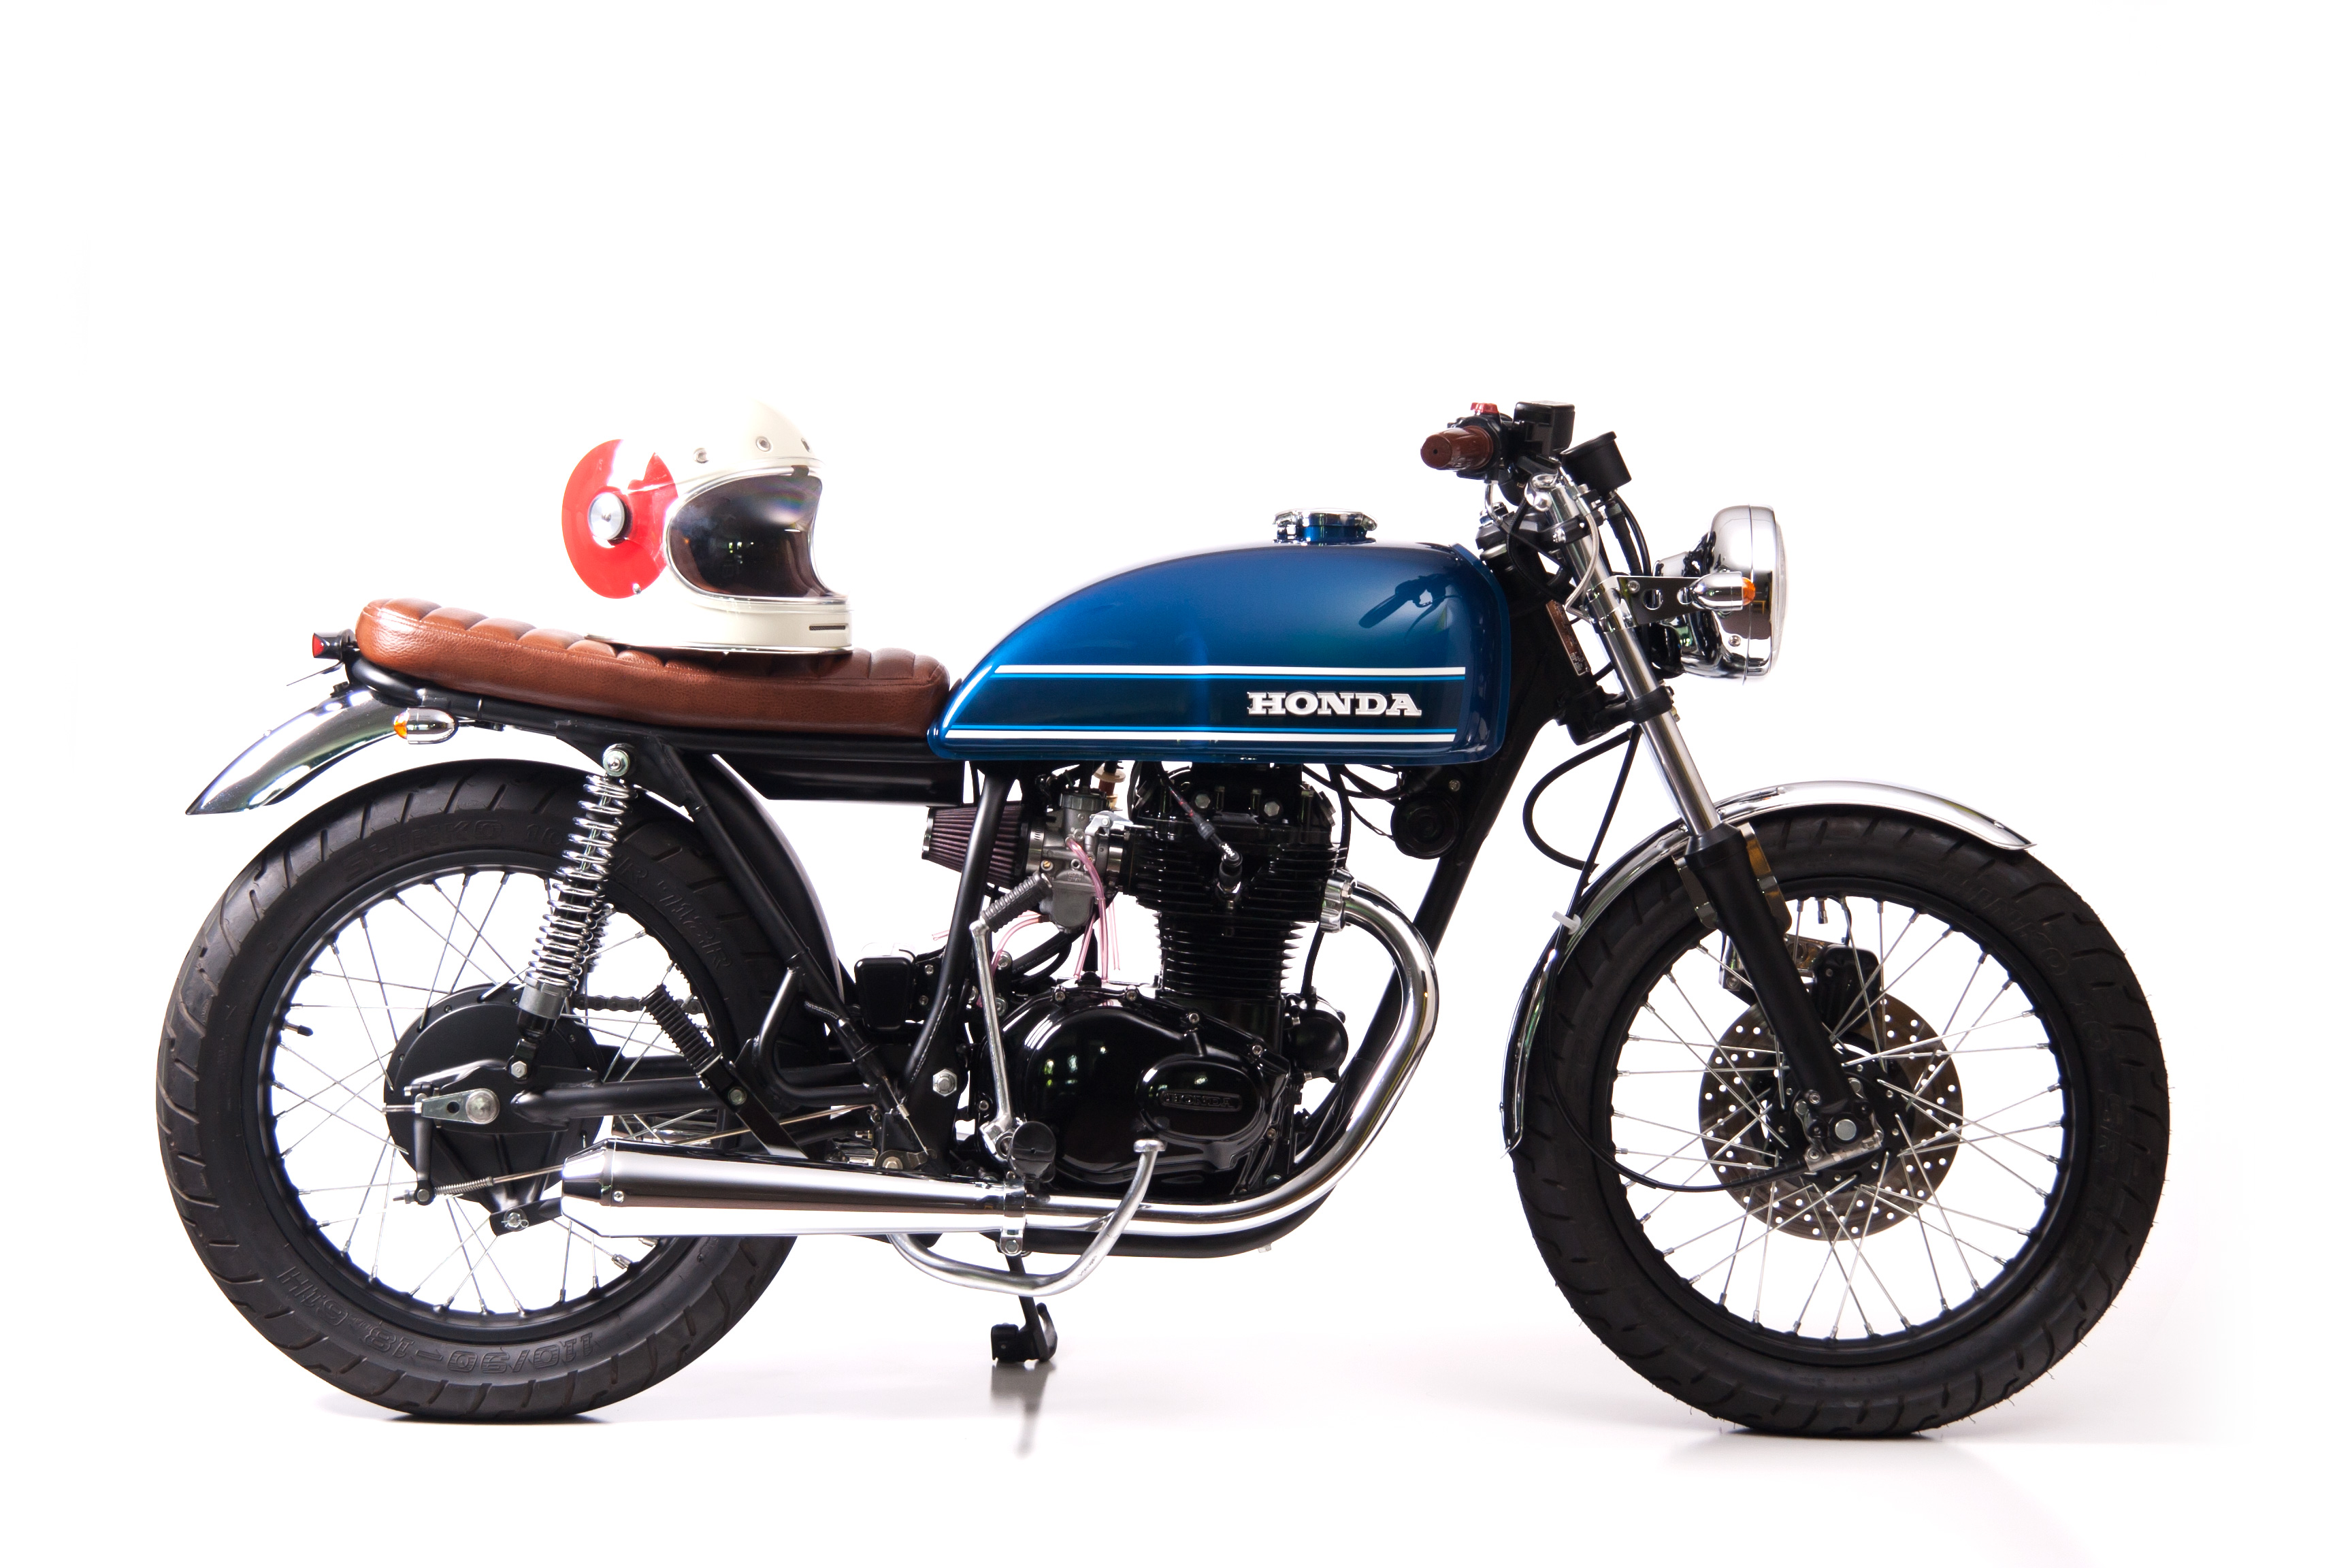 Fully Restored 1976 Honda CB360T